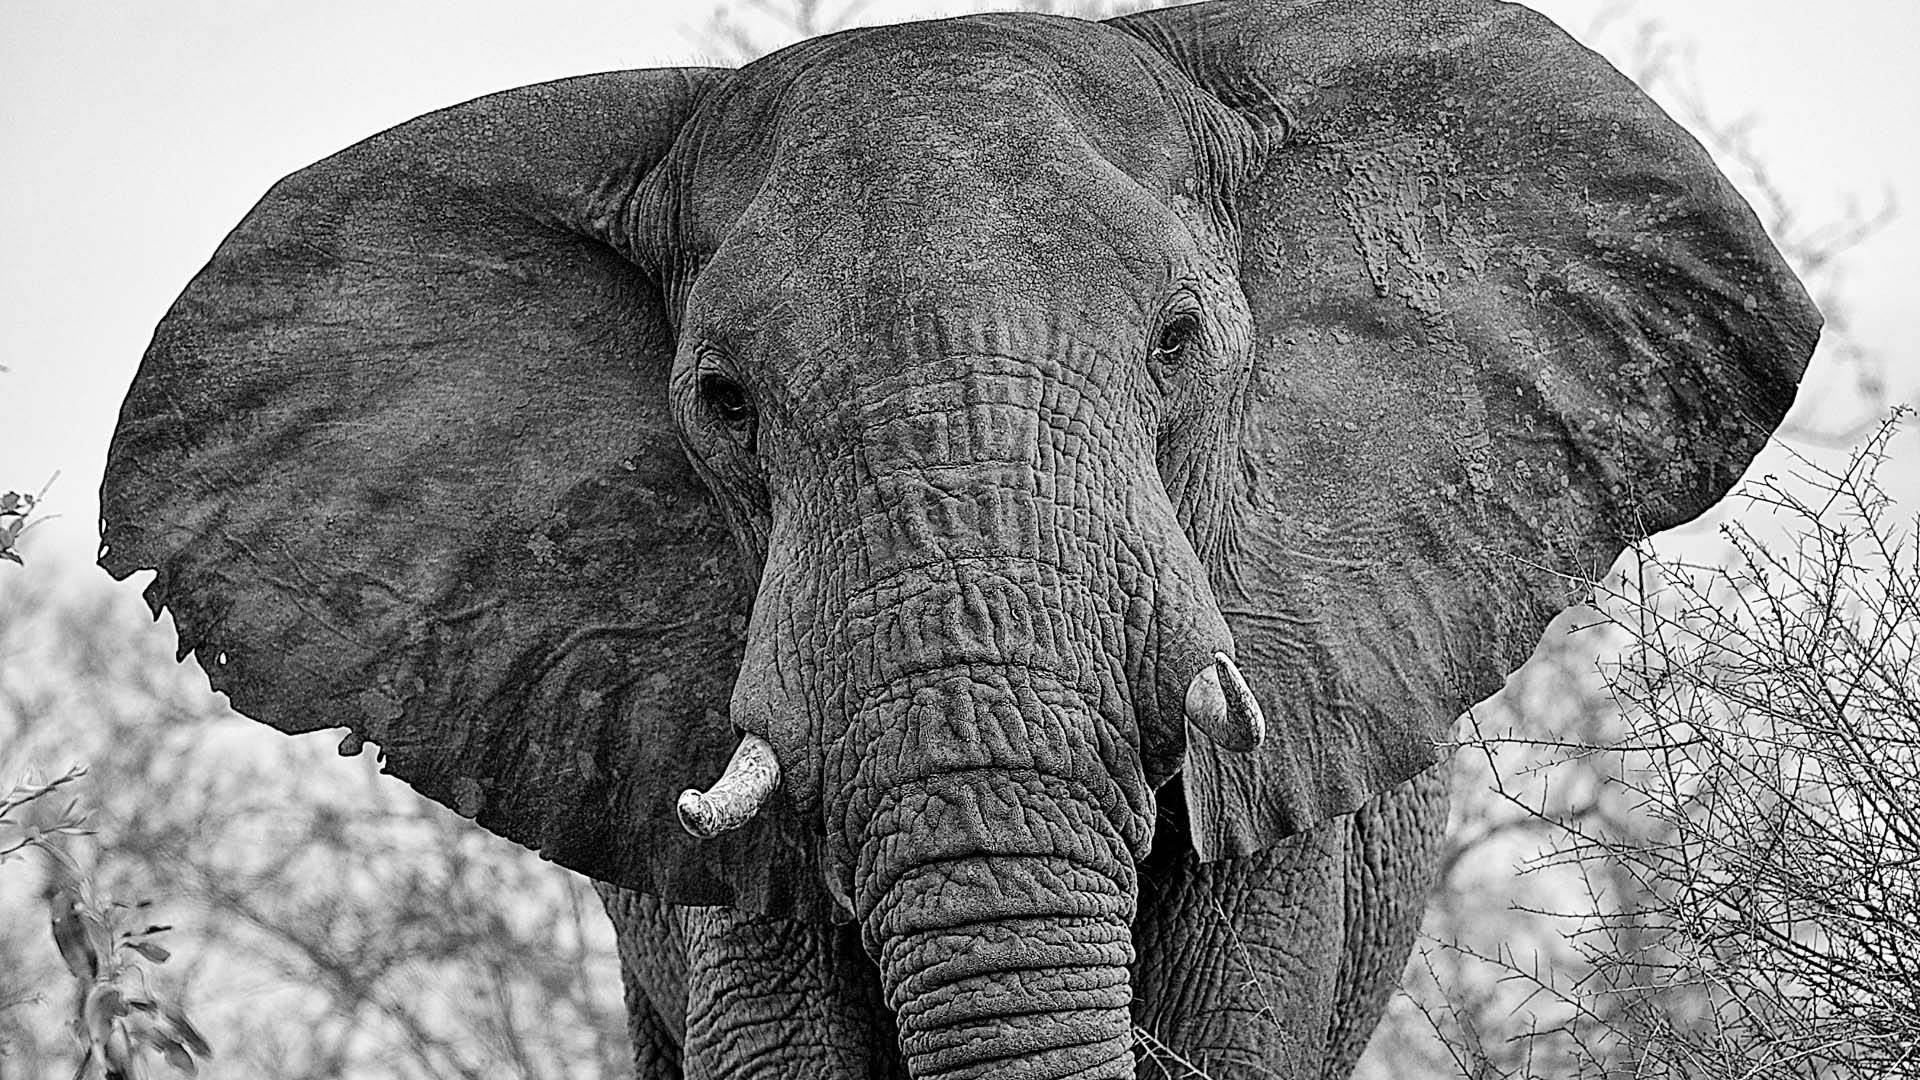 Elephant by Shannon Wild